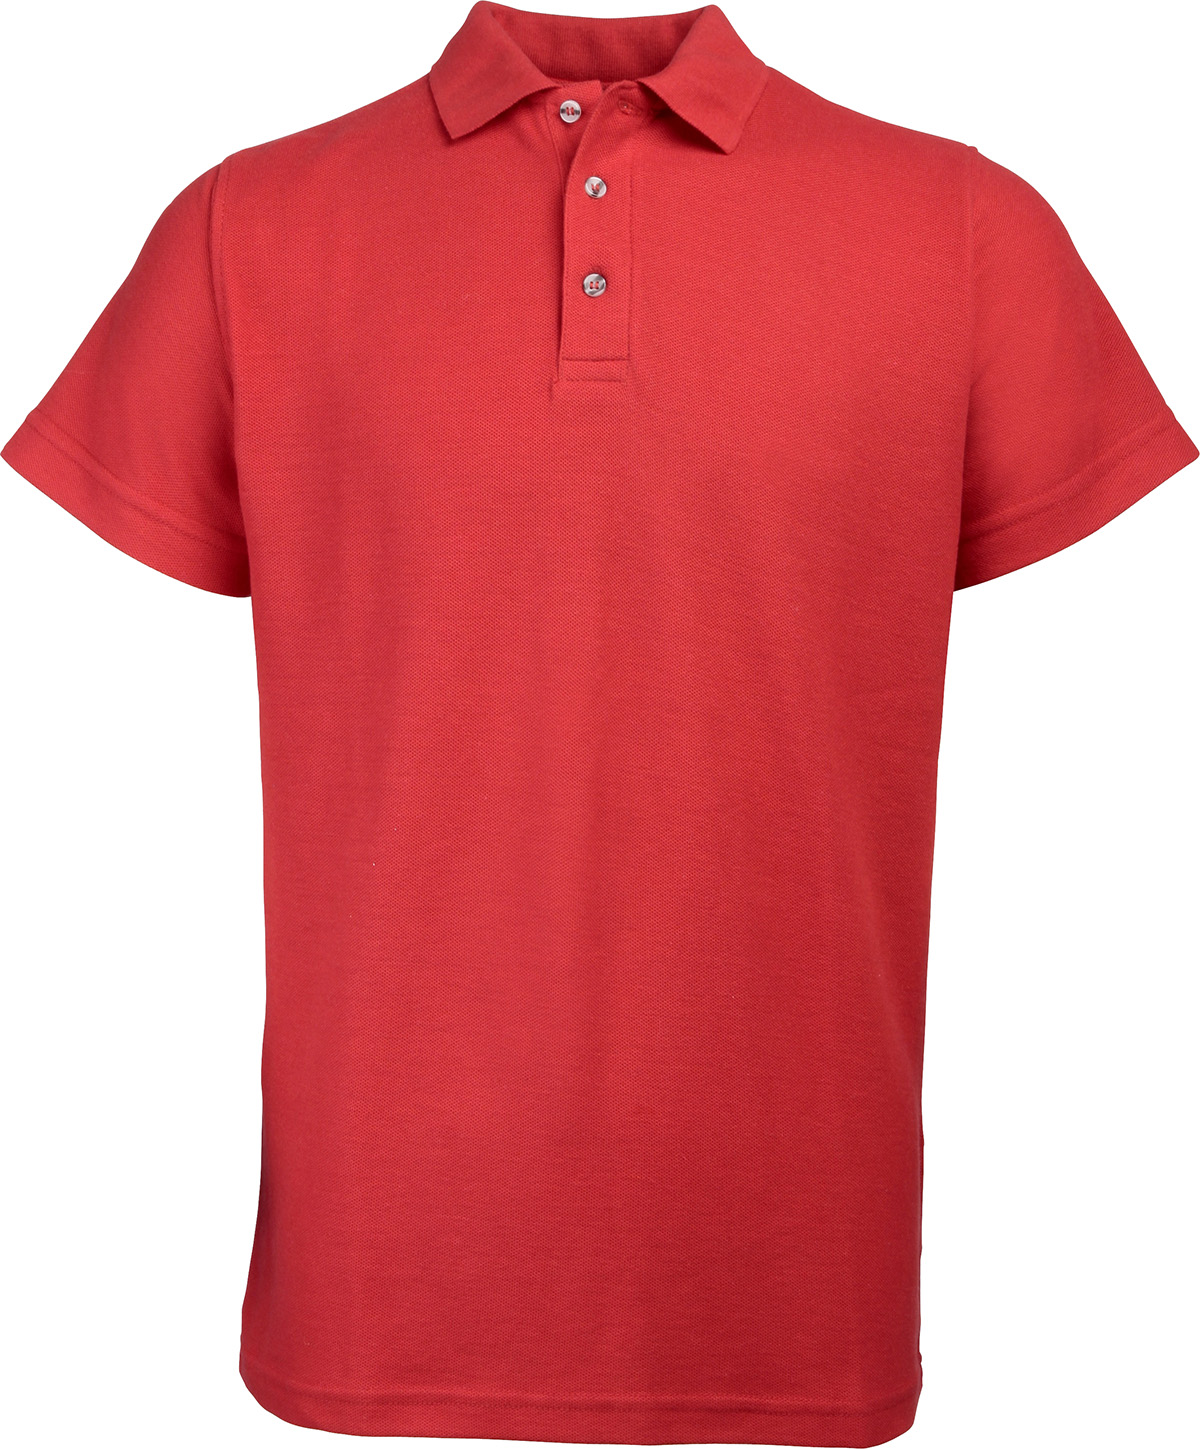 5PK EMBROIDERED WORKWEAR POLO SHIRTS PROFESSIONAL UK SELLER EMBROIDERY WORKWEAR